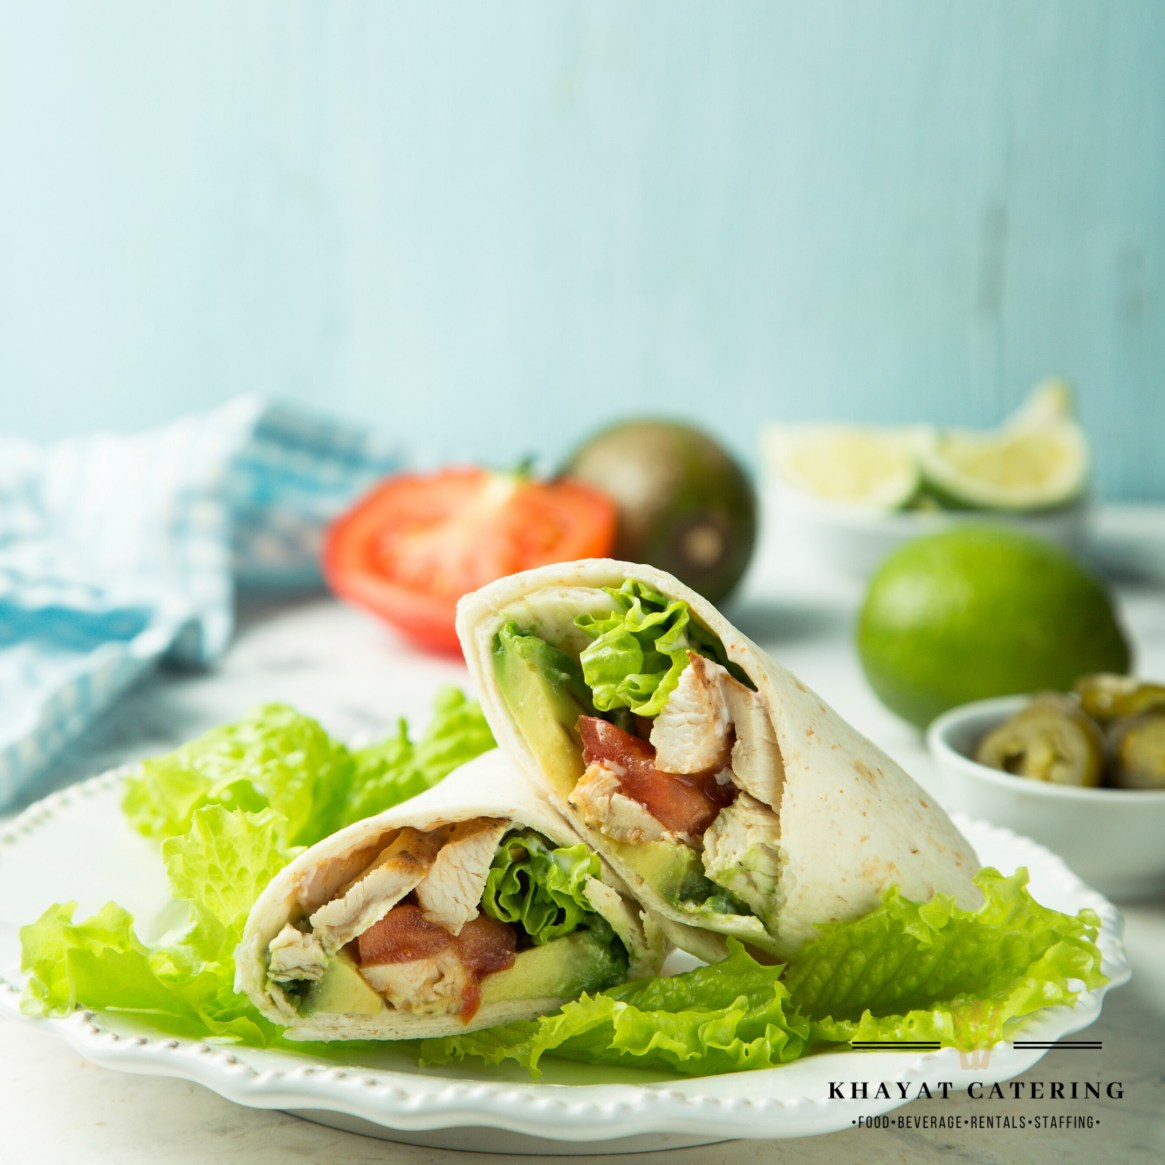 Khayat Catering rilled chicken Caesar wrap